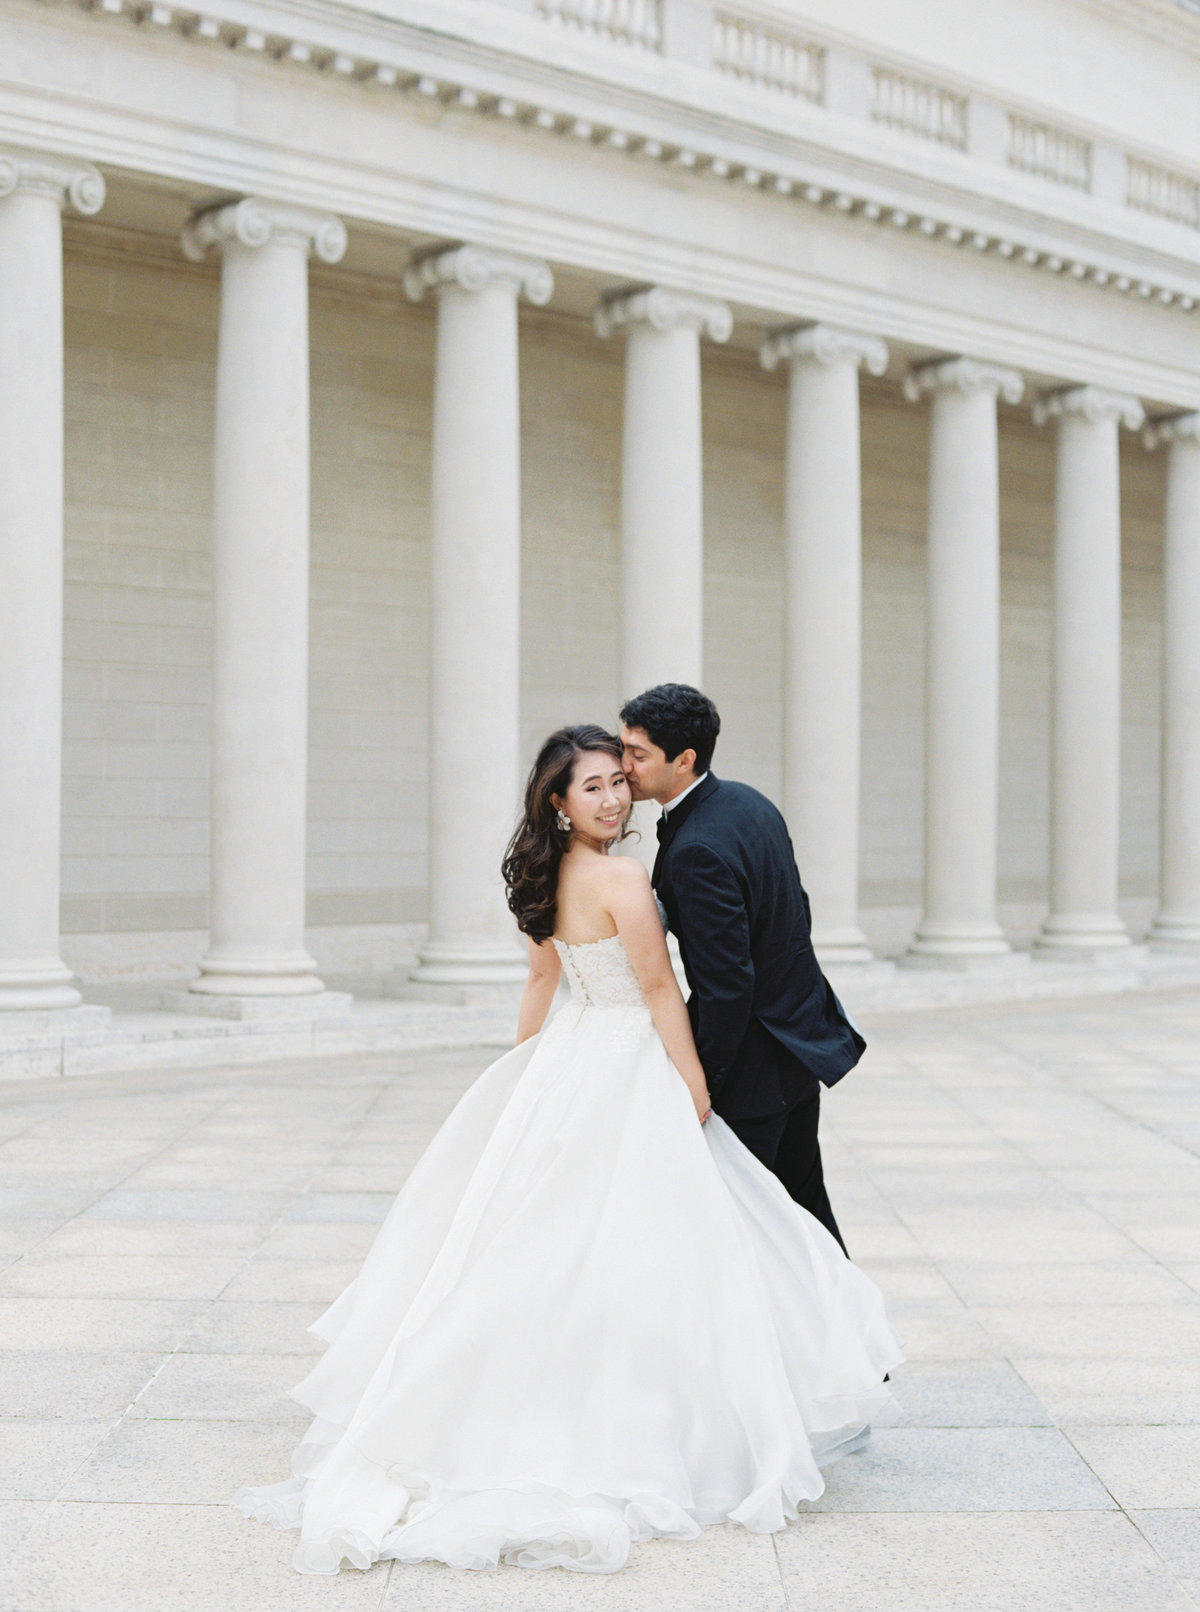 Diana + Pablo San Francisco California Legion of Honor Museum Wedding Session | Cassie Valente Photography 0023